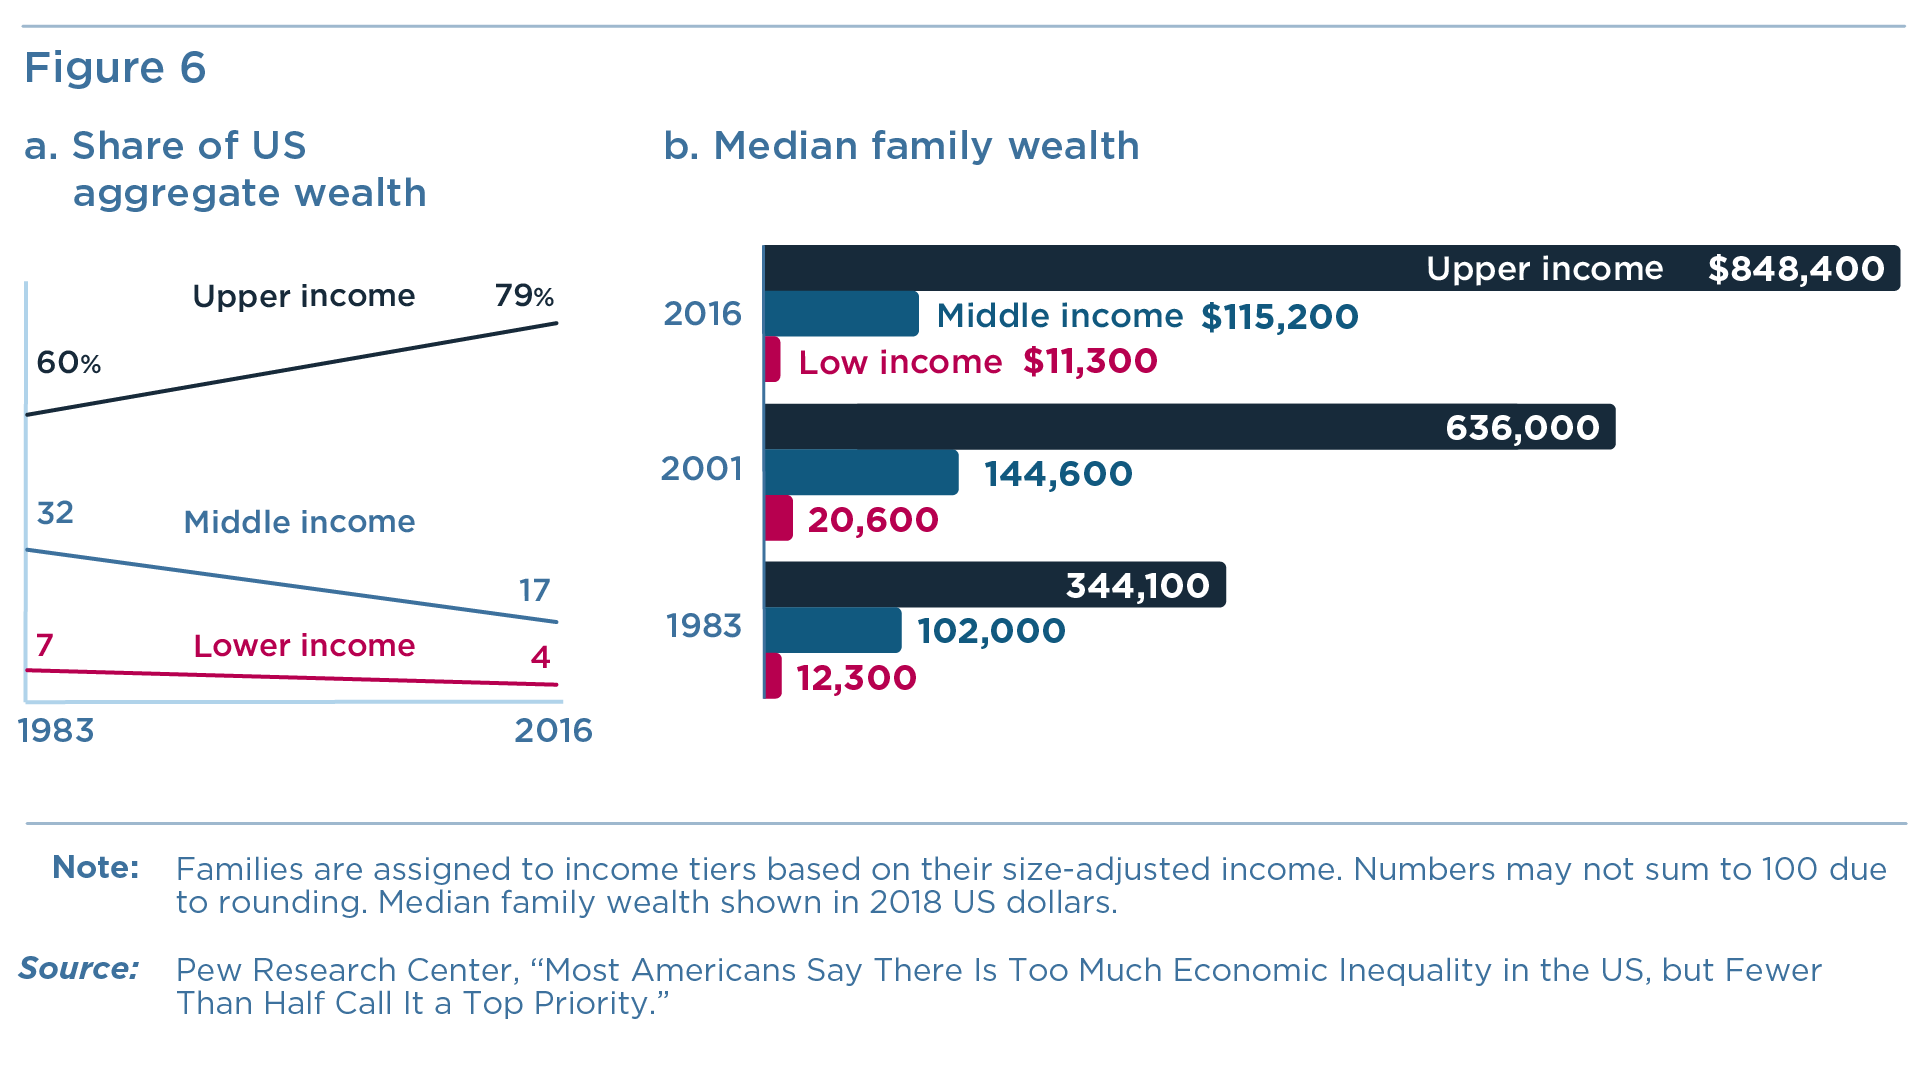 Figure 6: Share of US aggregate wealth and median family wealth held by upper income, middle income, and lower income workers.